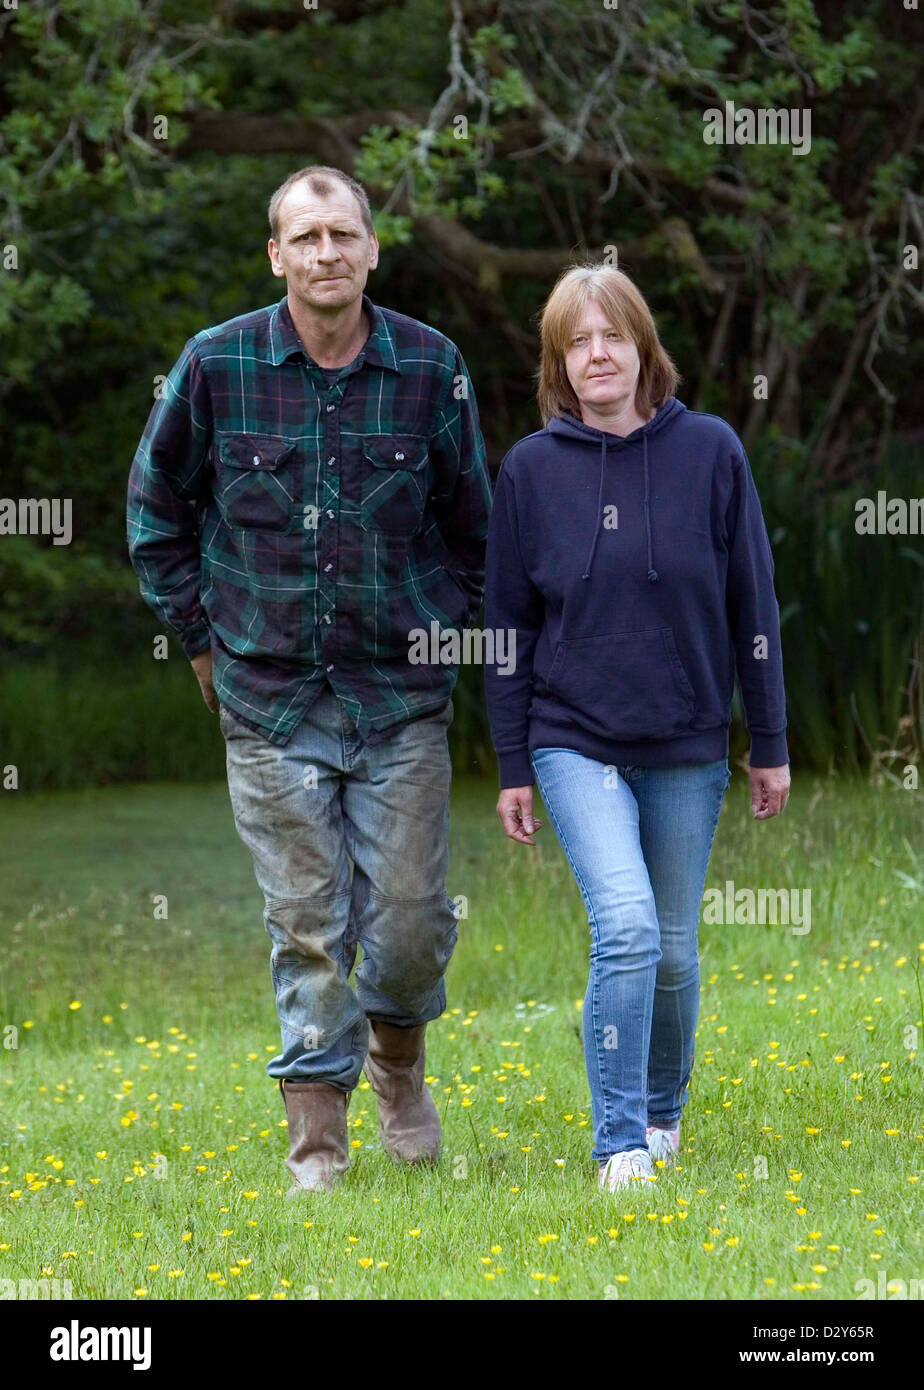 04.06.08. Jacqui Thompson and her husband Kerry at home near Llanwrda, West Wales. - Stock Image